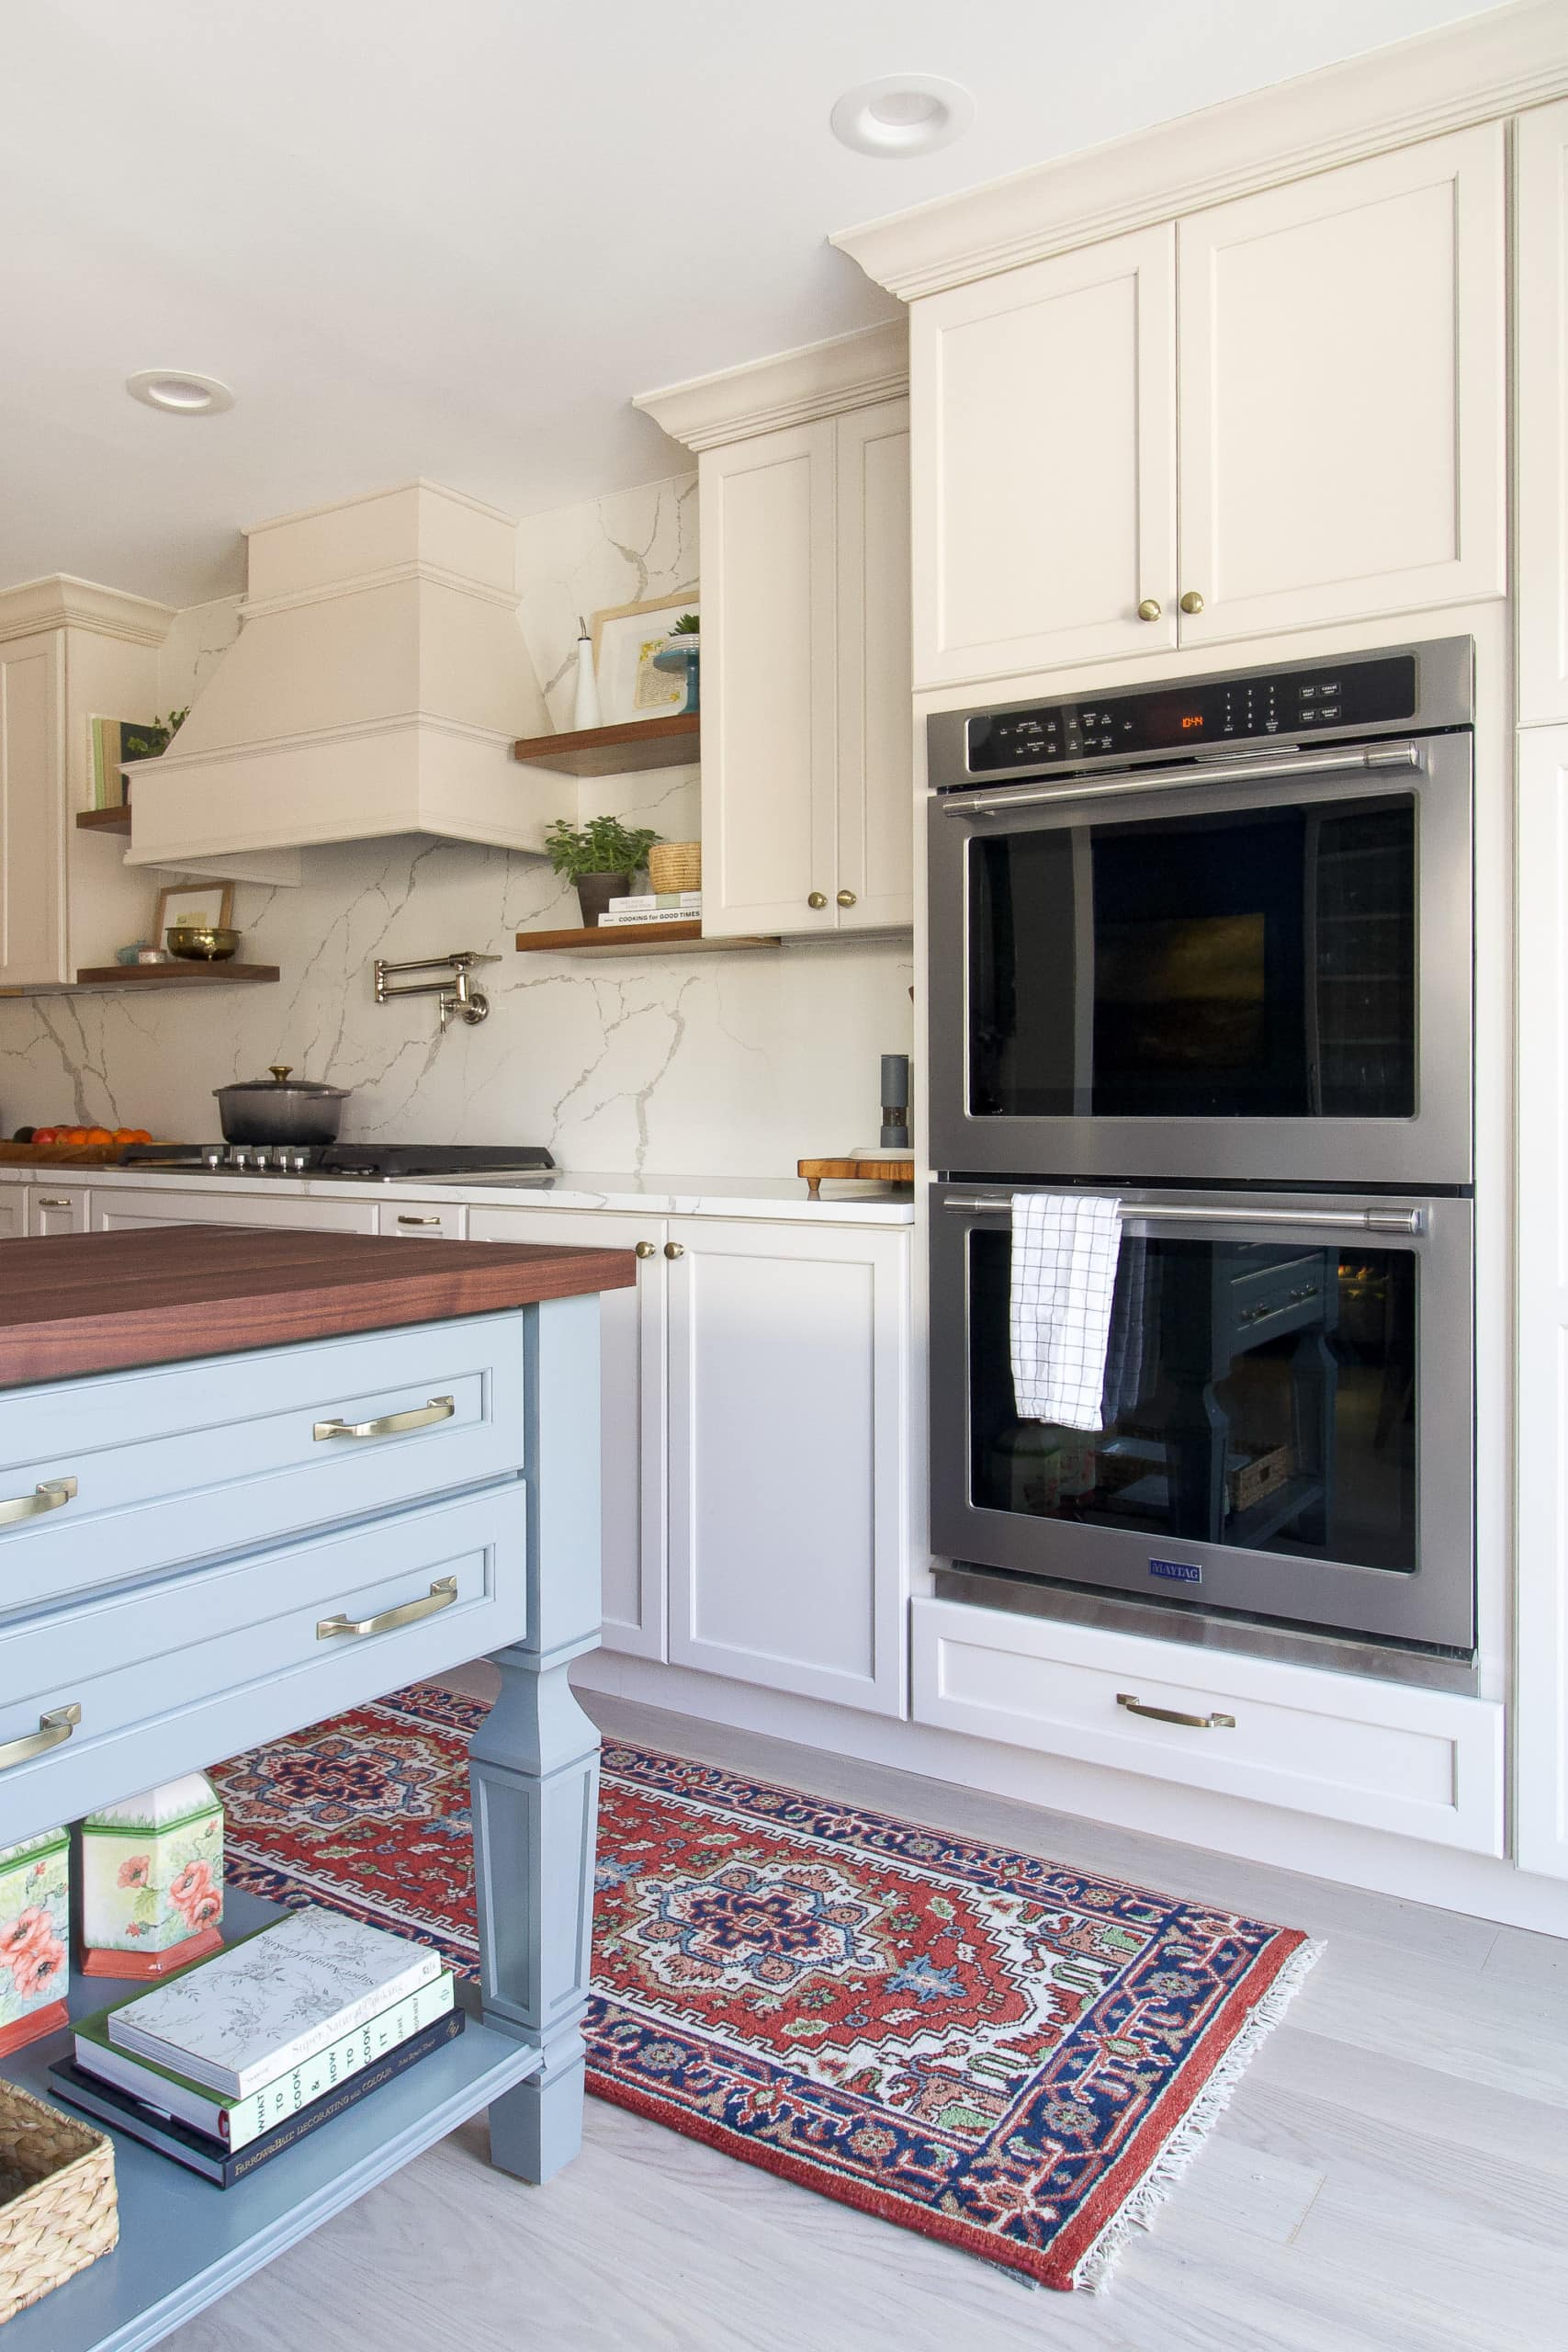 Adding a double oven to a kitchen renovation